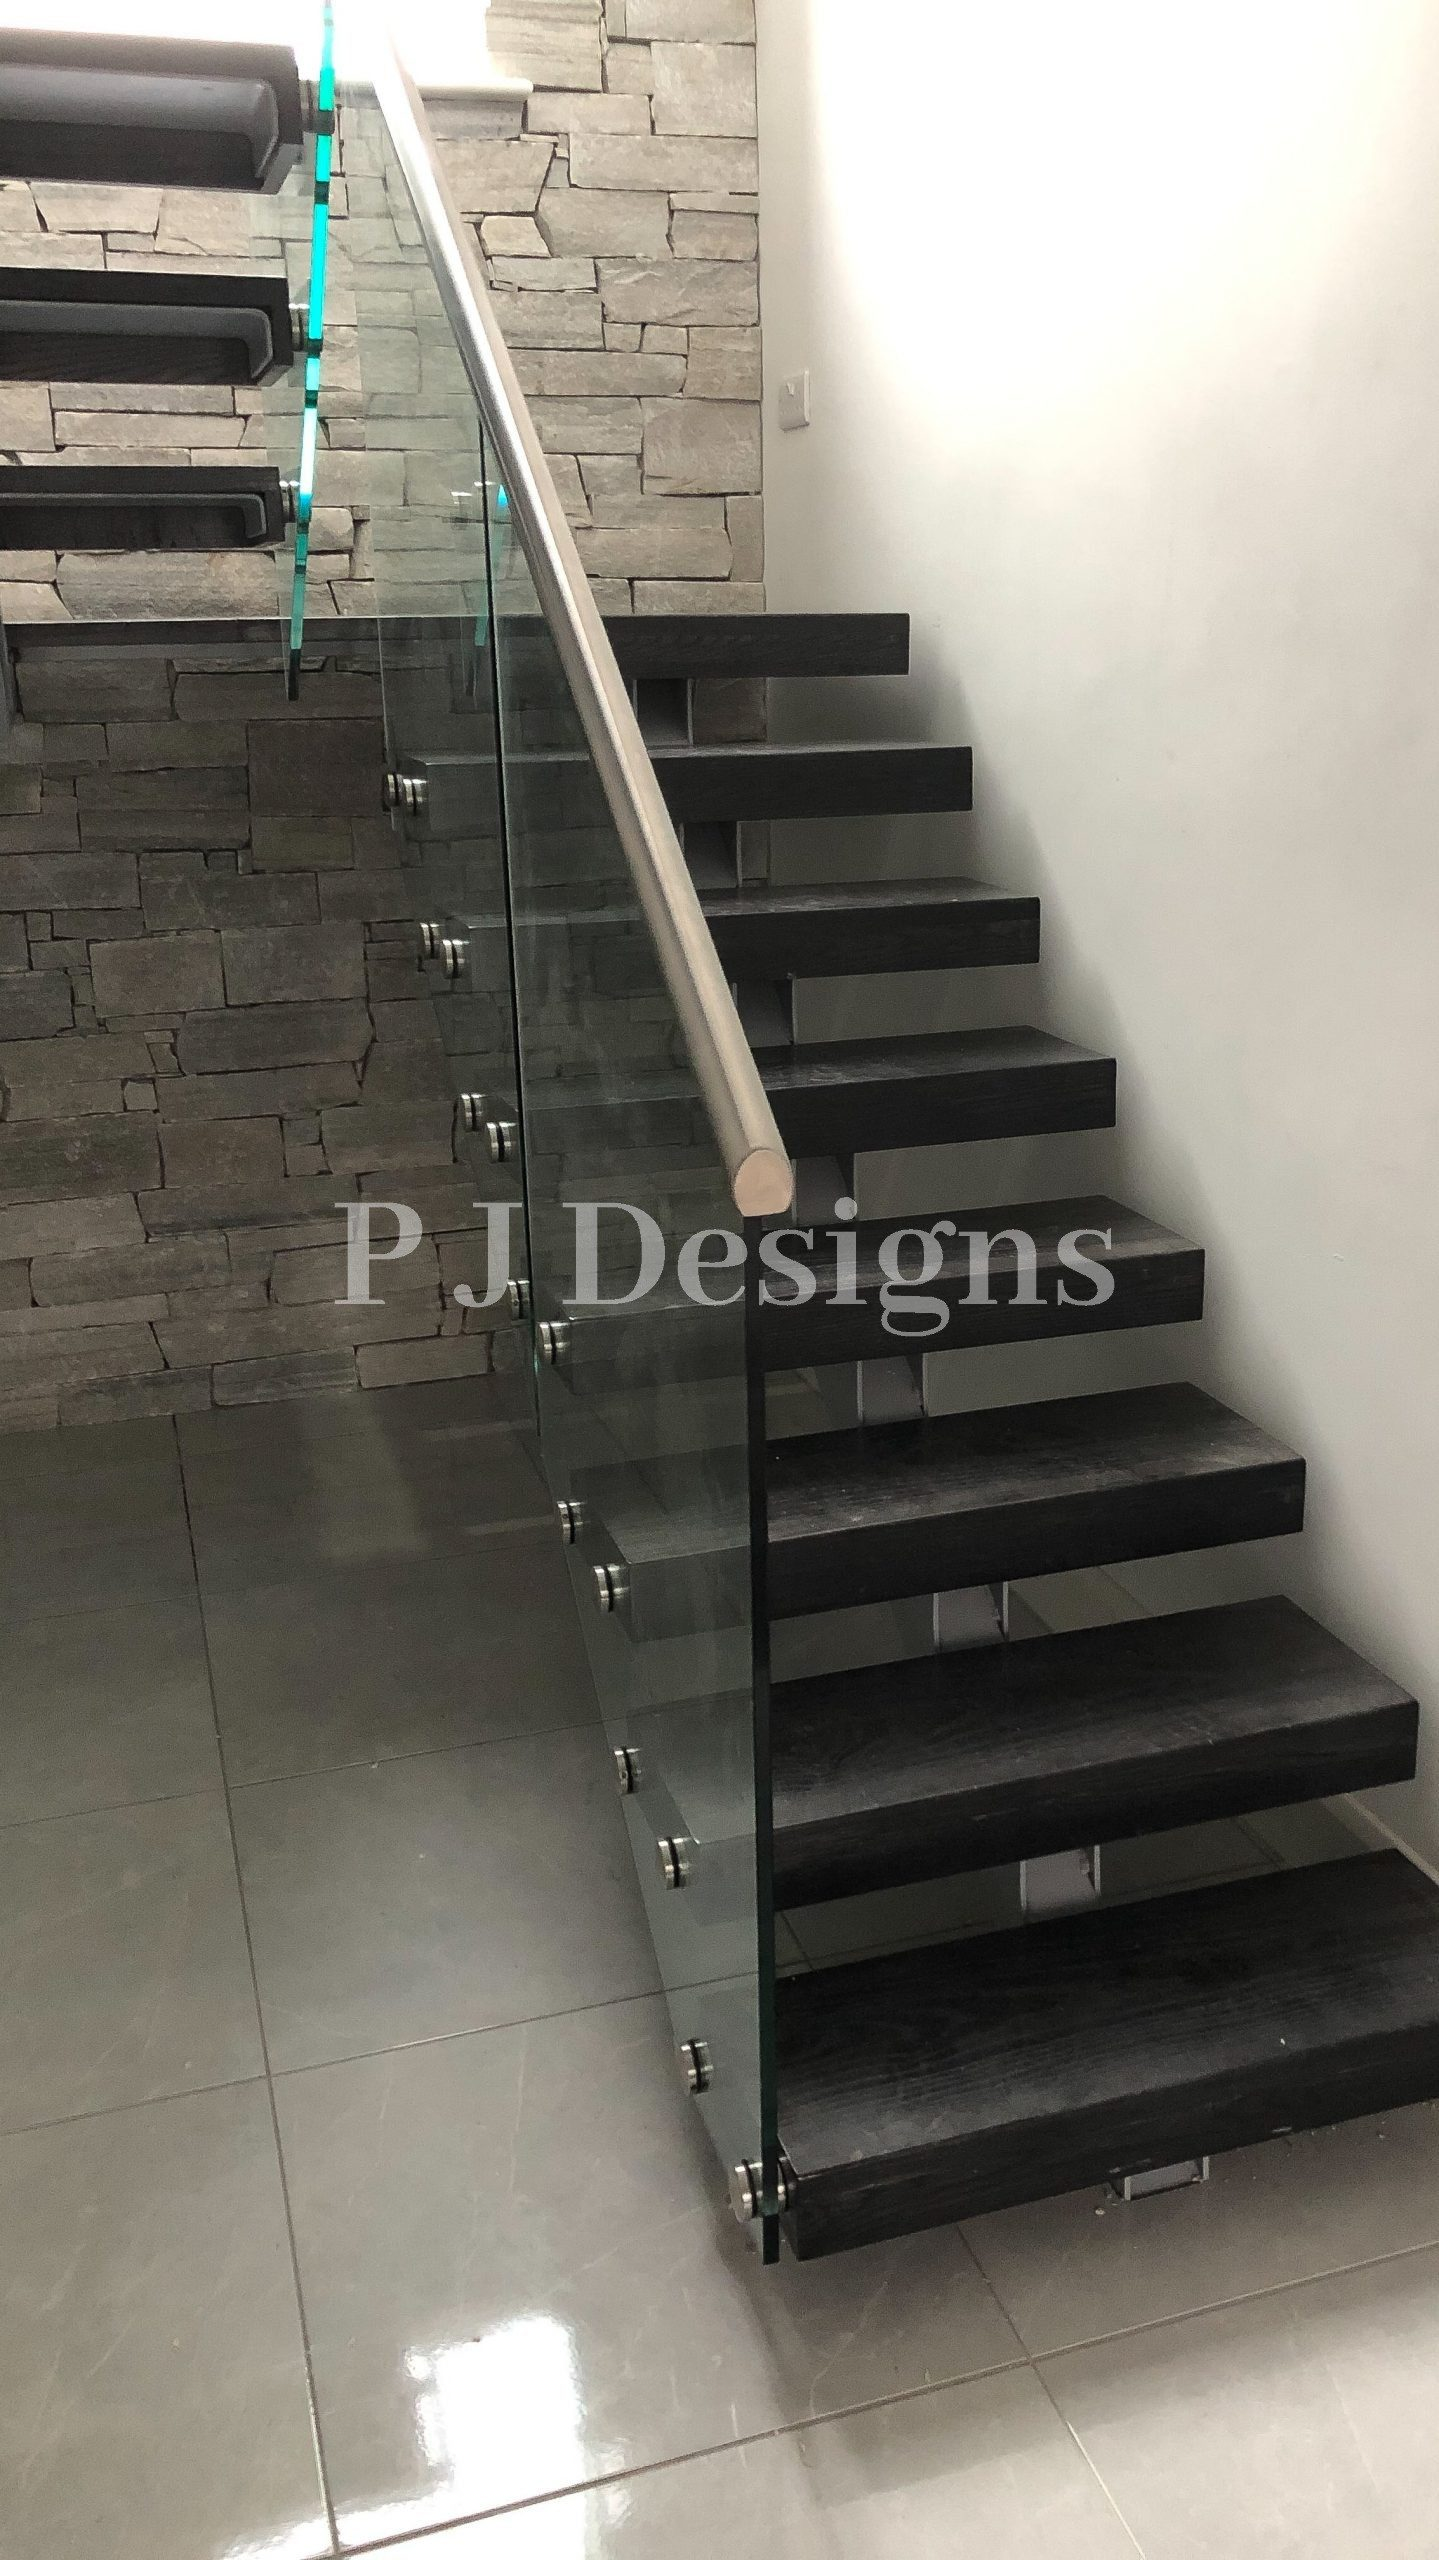 Single spine with a detail Rione Plate Design under the black ash steps and a landing with a Glass and Stainless Steel balustrade